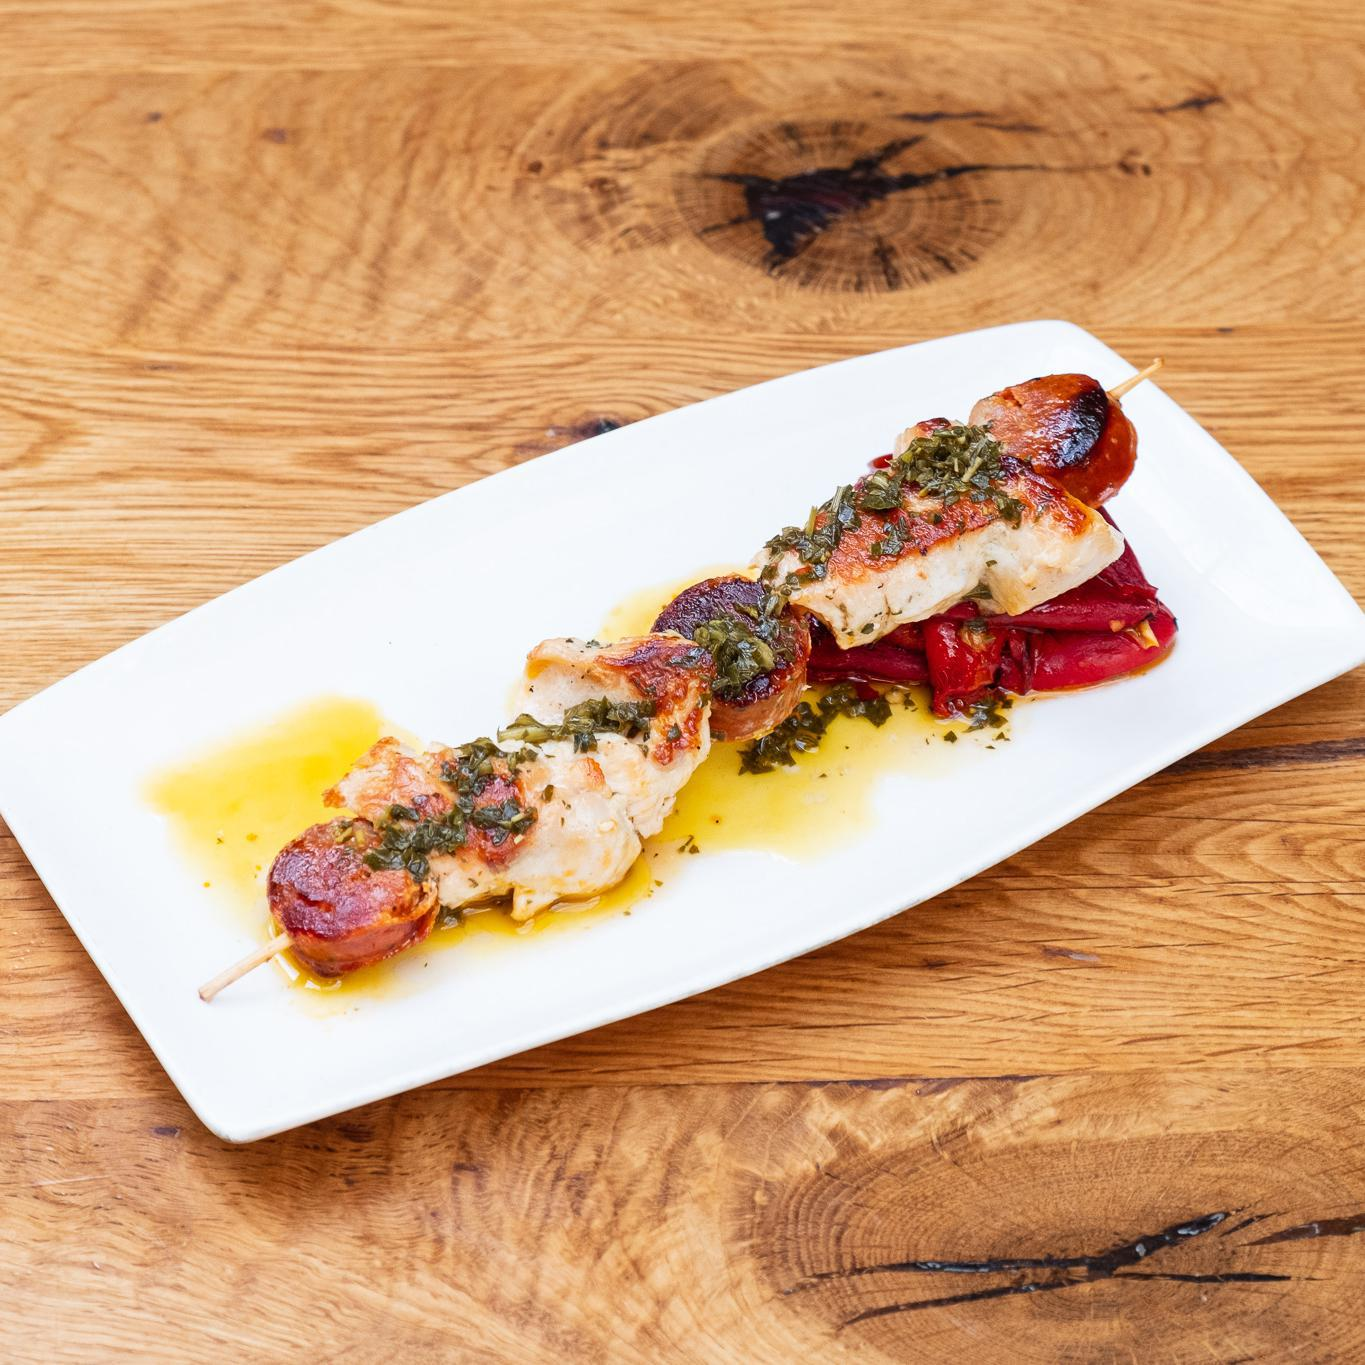 Chicken & Chorizo Skewer, Grilled Piquillo Peppers, Herb Oil